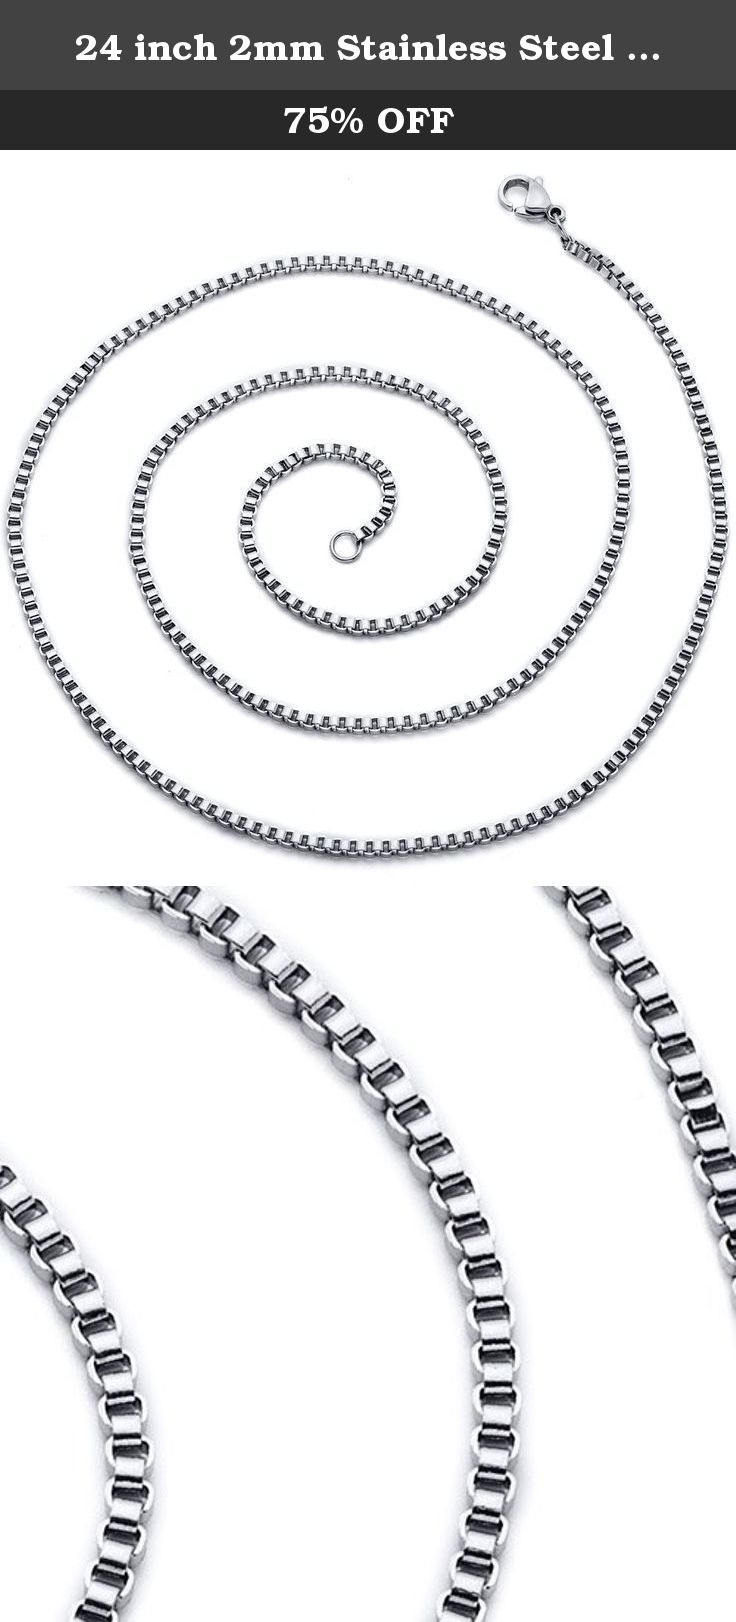 24 inch 2mm Stainless Steel Box Chain Necklace available in 22, 24, 26, 30 and 36 inch length. Celebrate your unique personality with a fashion statement that upgrades your everyday look and adds panache to your style. This simple, yet sleek Diamond Cut Box Chain is constructed from high quality, highly polished Stainless Steel that has that Rich Platinum Look without the Platinum price. The classic box style makes for a classy comfortable flexible fit. Every ensemble will get a dash of...